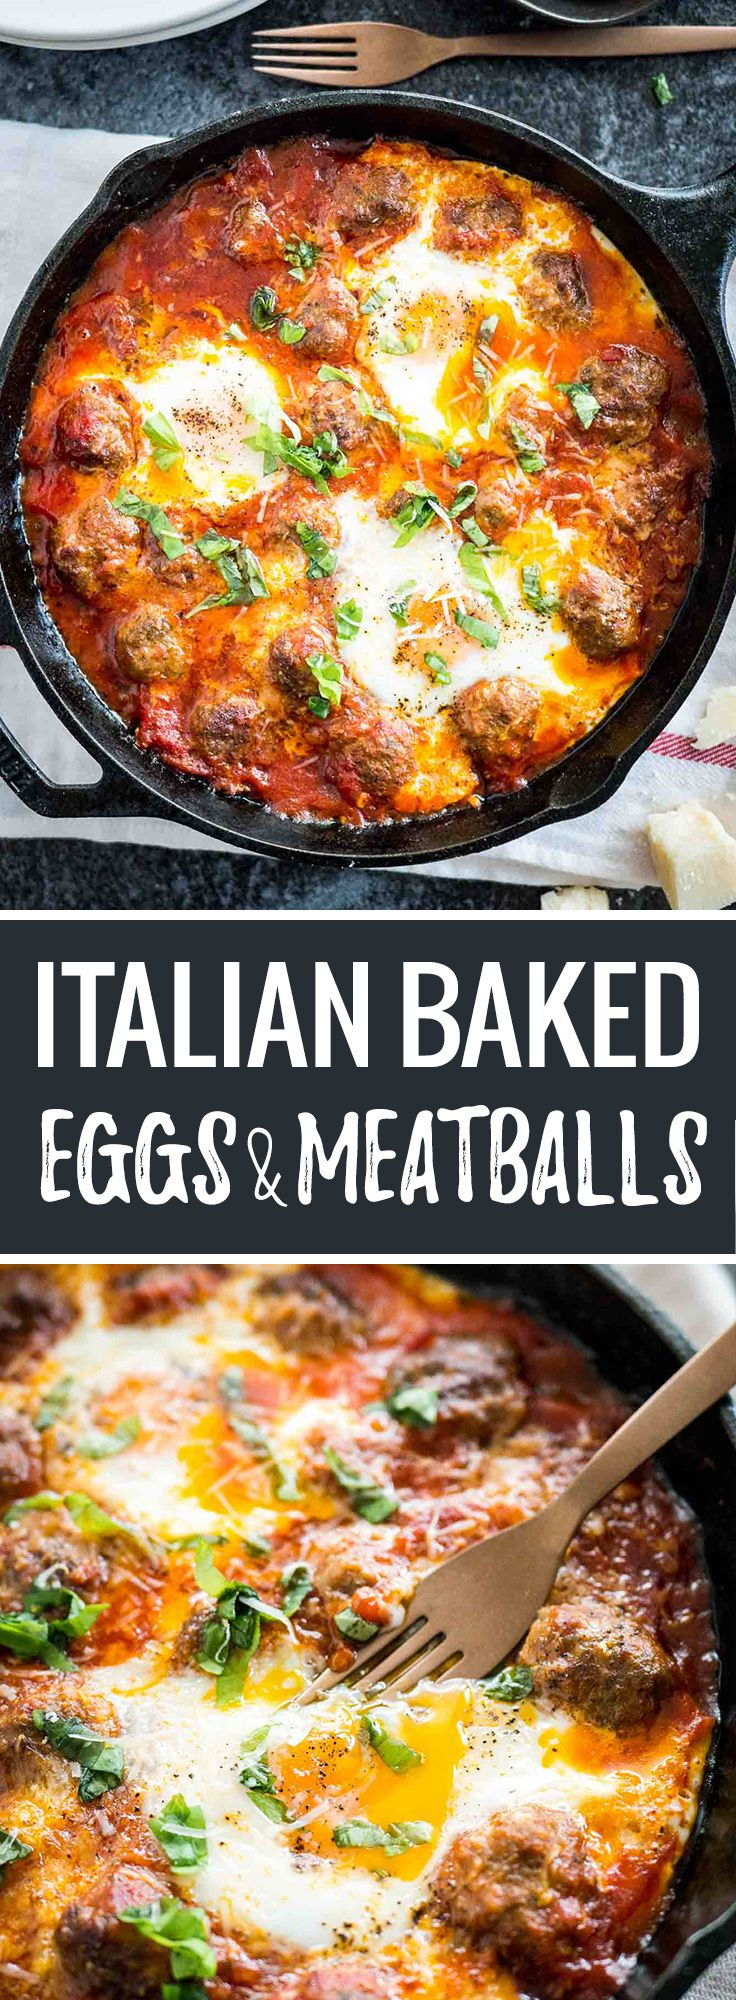 Italian baked eggs and meatballs recipe brunch egg and dishes dinner ideas forumfinder Image collections